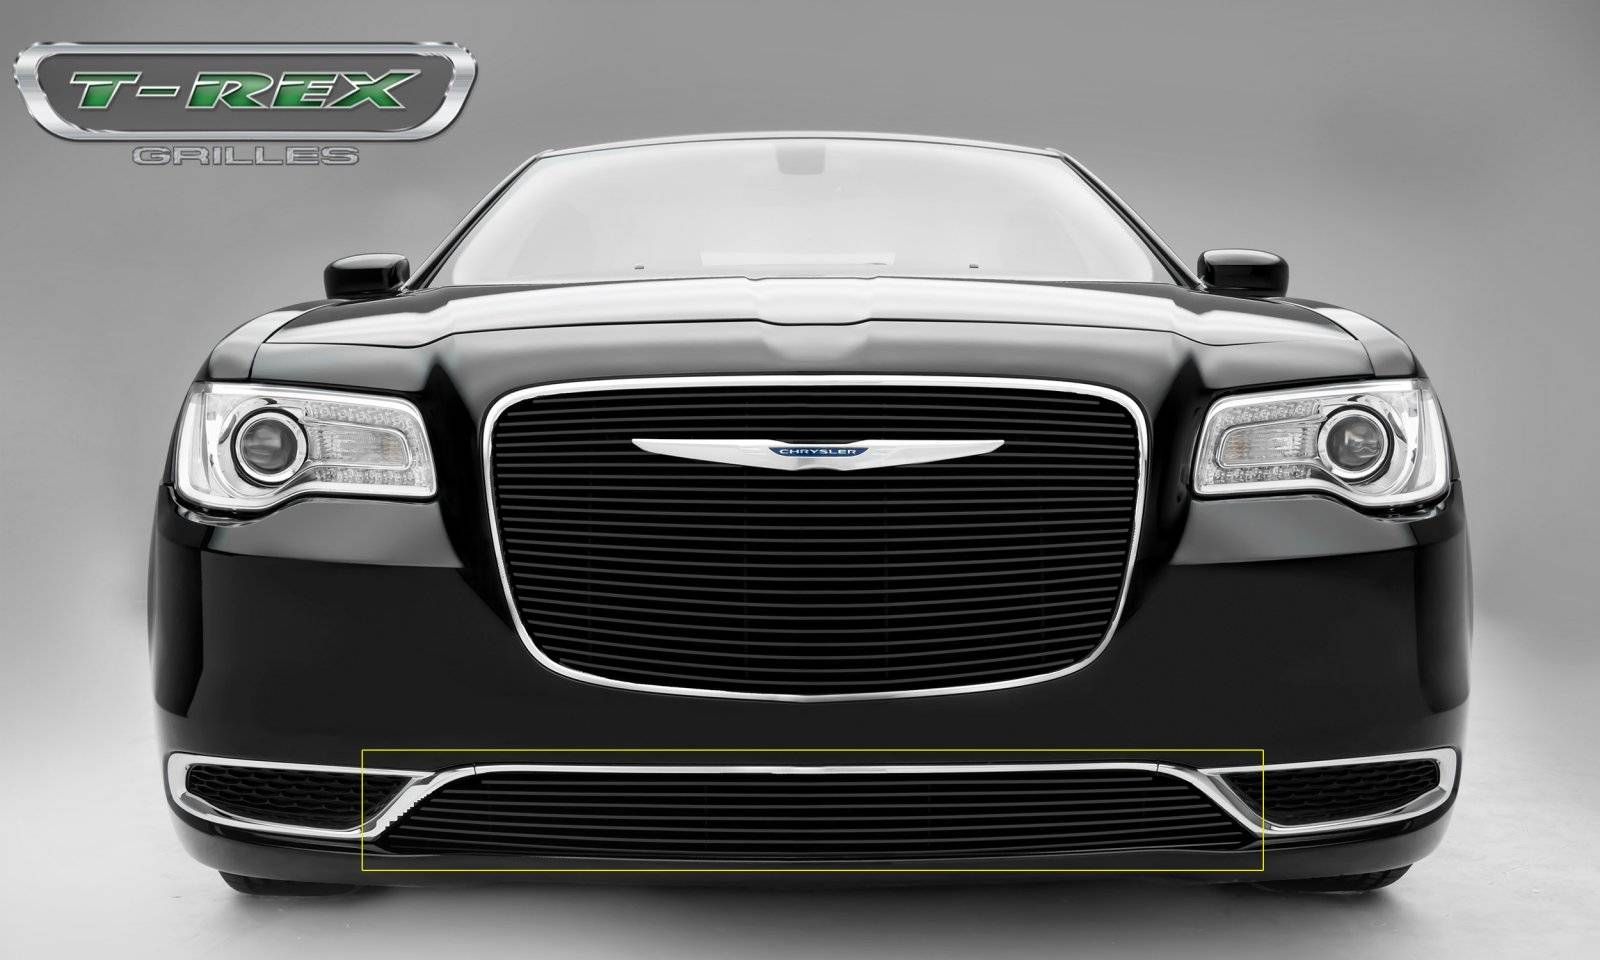 T-REX Grilles - 2015-2018 Chrysler 300 Billet Bumper Grille, Black, 1 Pc, Overlay, Only fits models without adaptive cruise control - PN #25436B